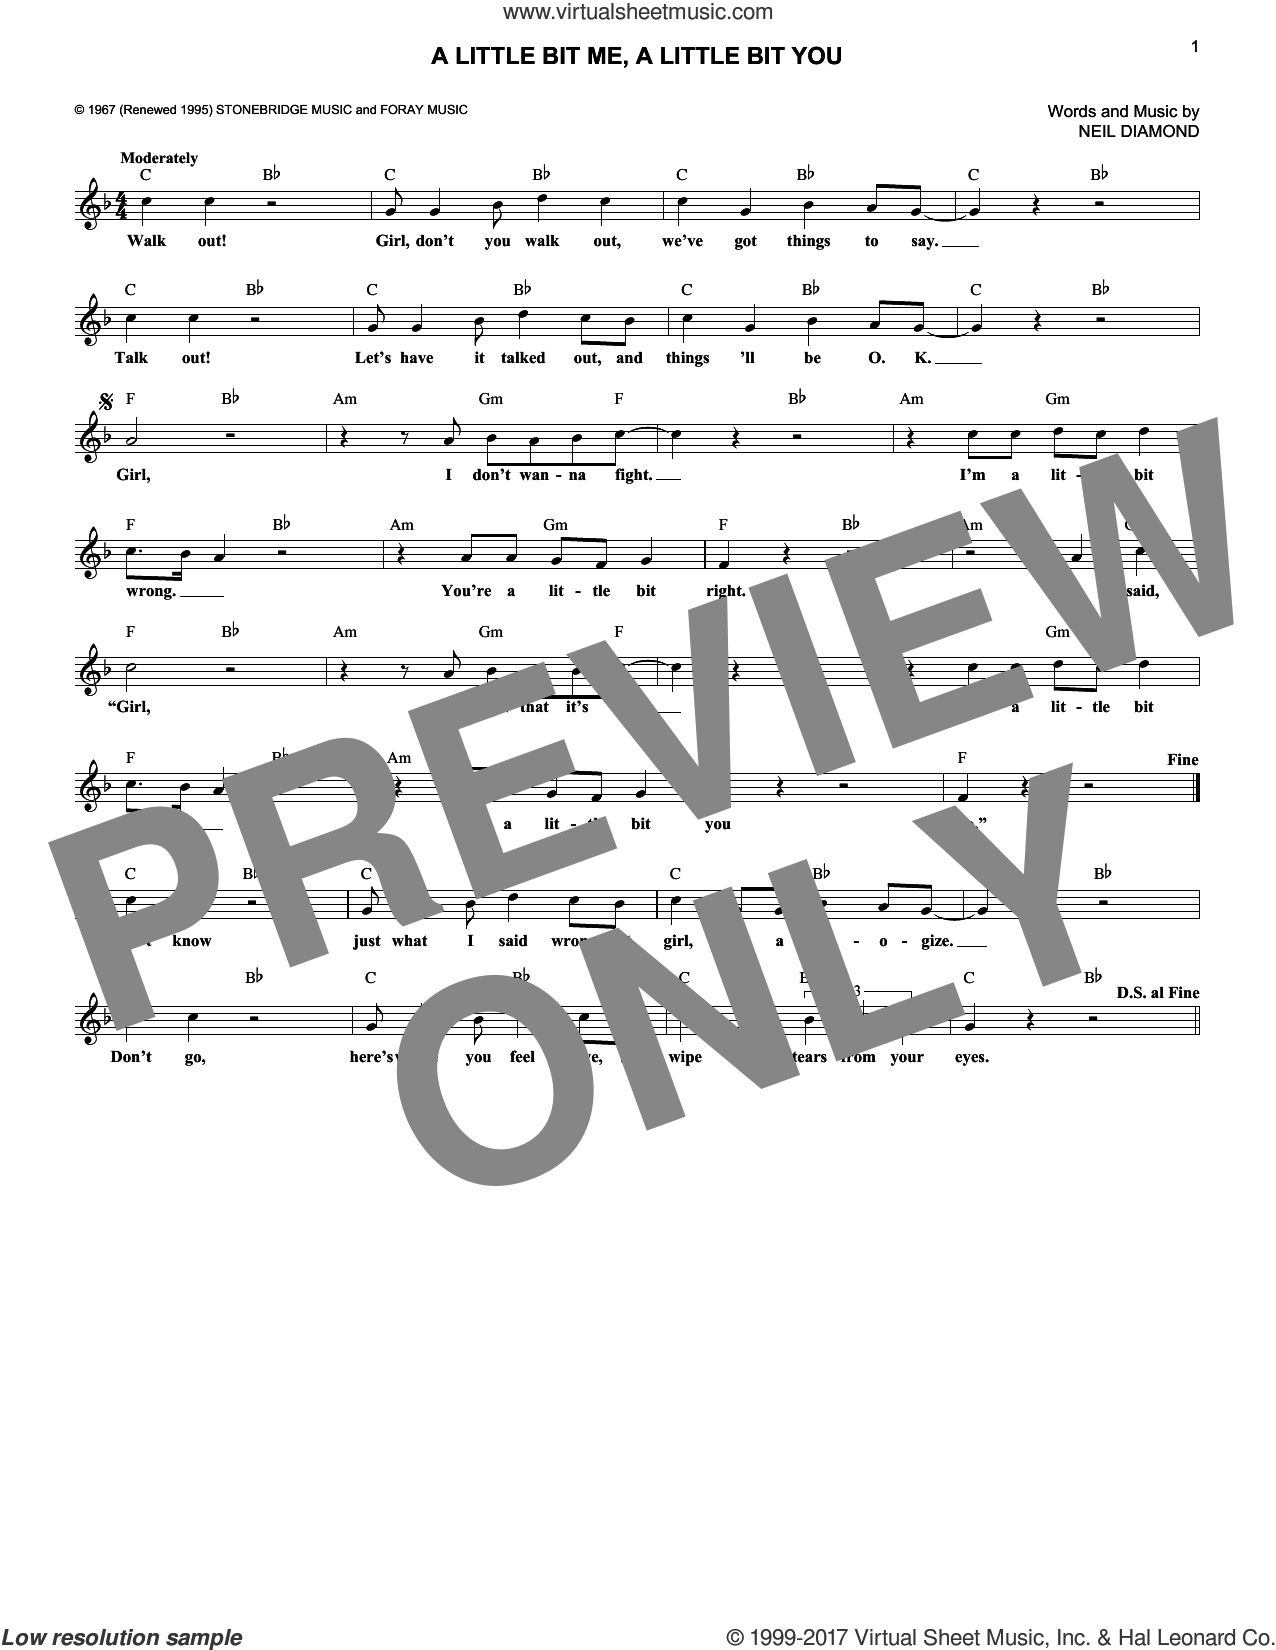 A Little Bit Me, A Little Bit You sheet music for voice and other instruments (fake book) by The Monkees and Neil Diamond, intermediate skill level